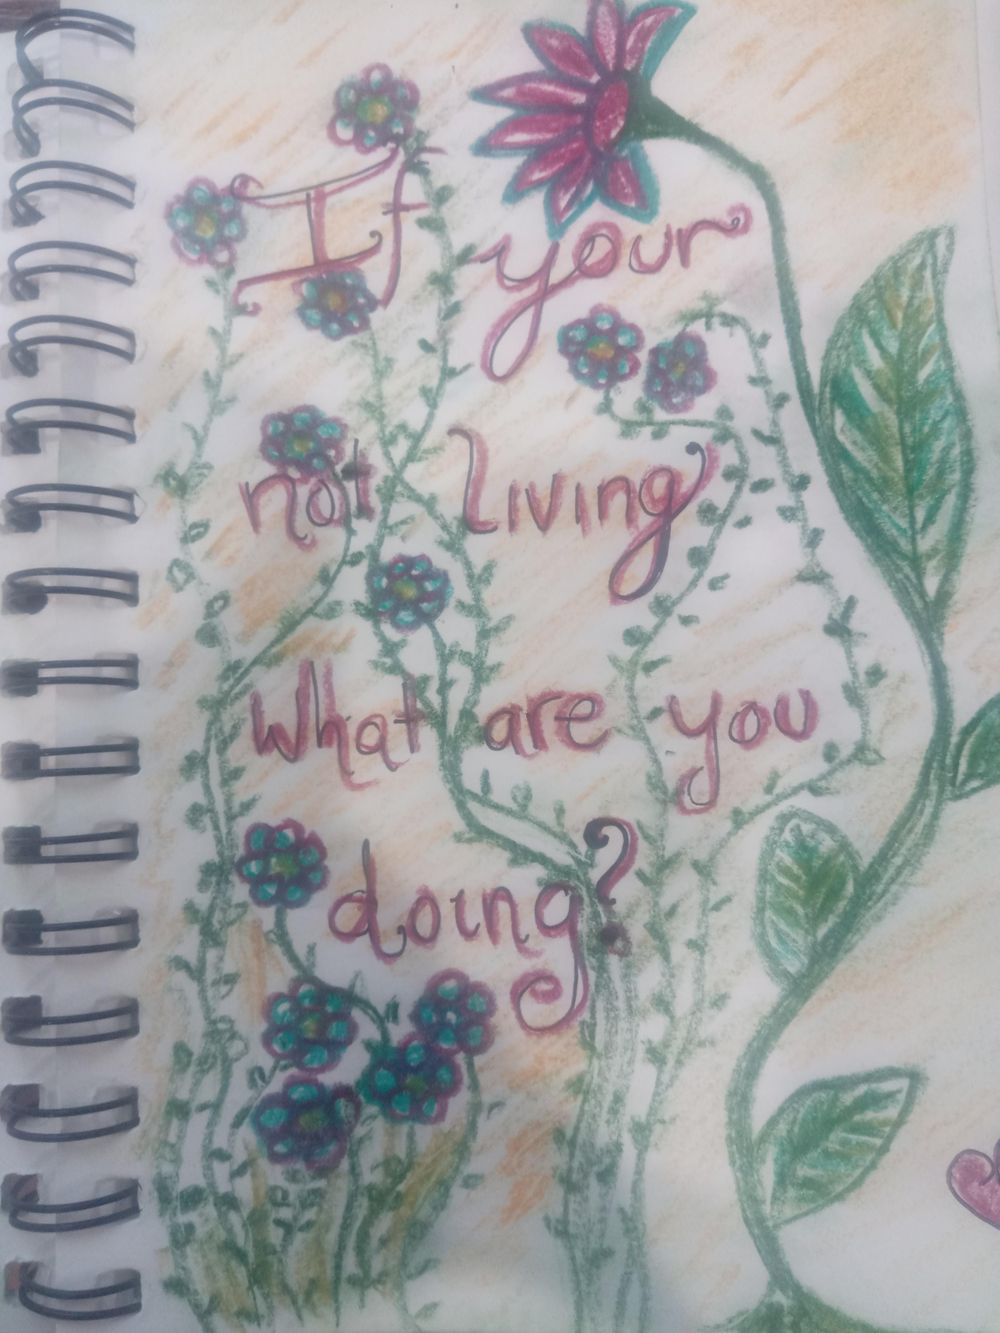 Visual Journaling drawing your feelings. - image 3 - student project